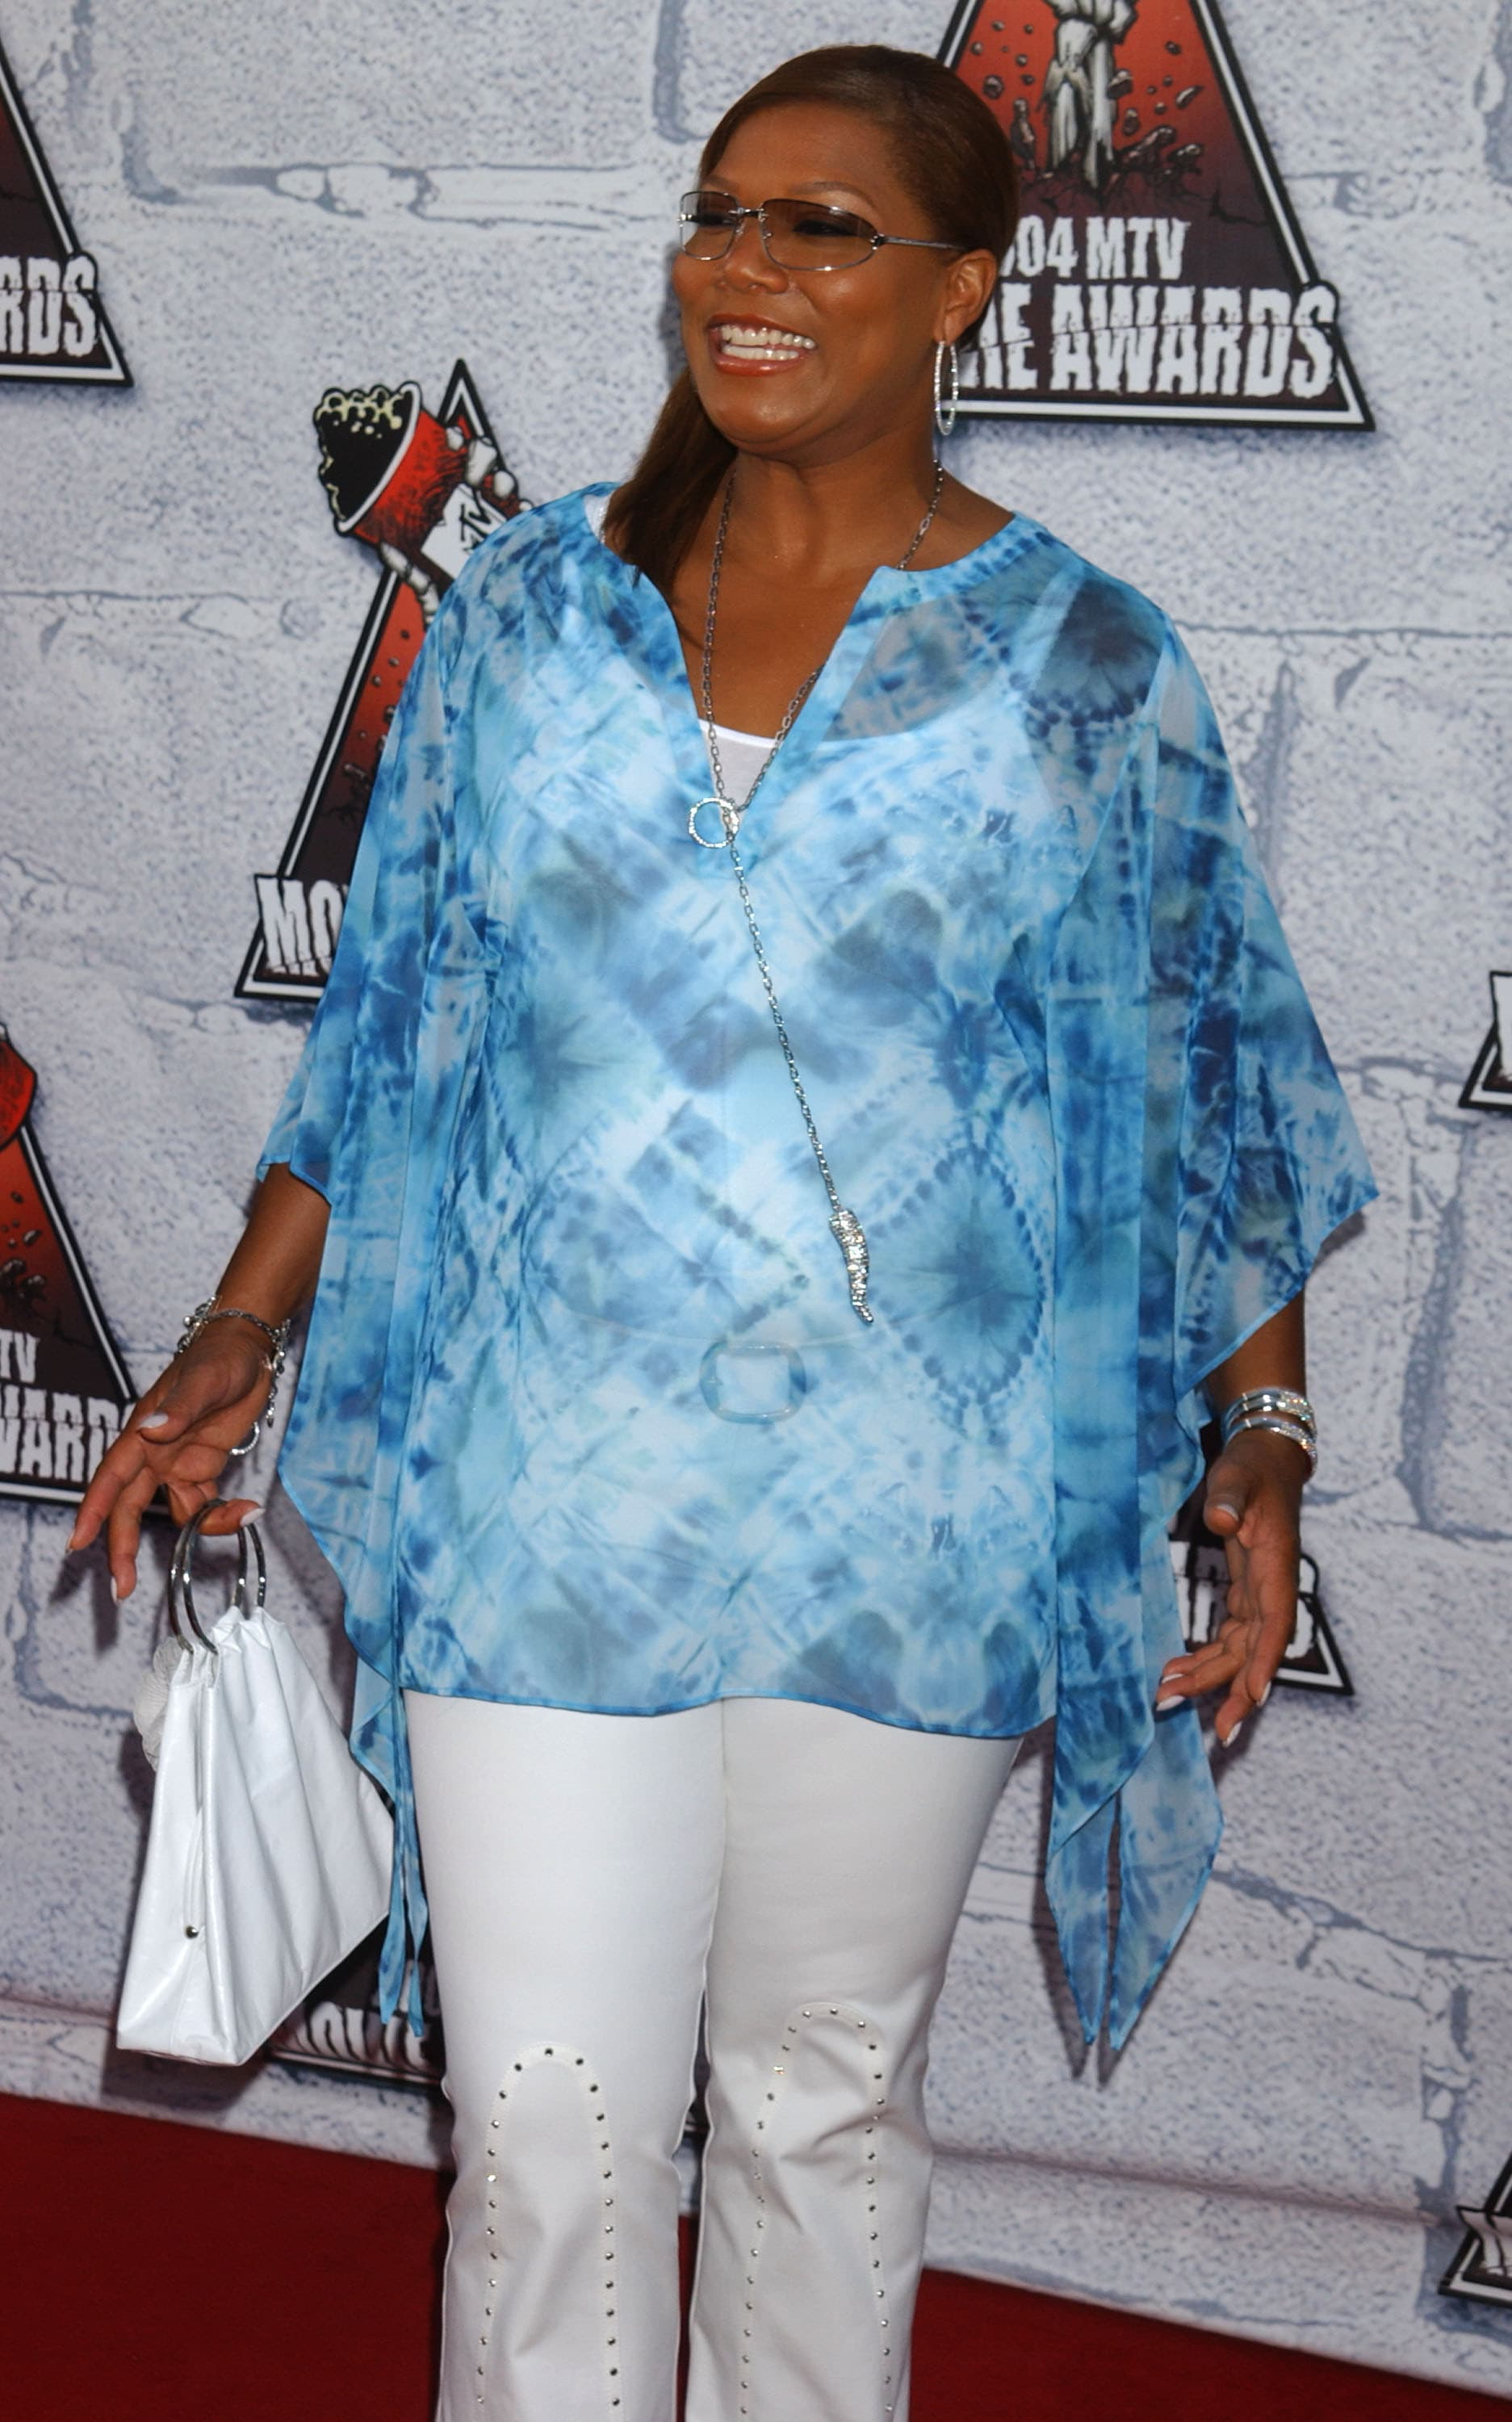 Queen wears a sheer tie-dye top over a tanktop and matching jeans with studs on the front. She also wears hoop earrings, lots of bracelets, and a triangular purse.